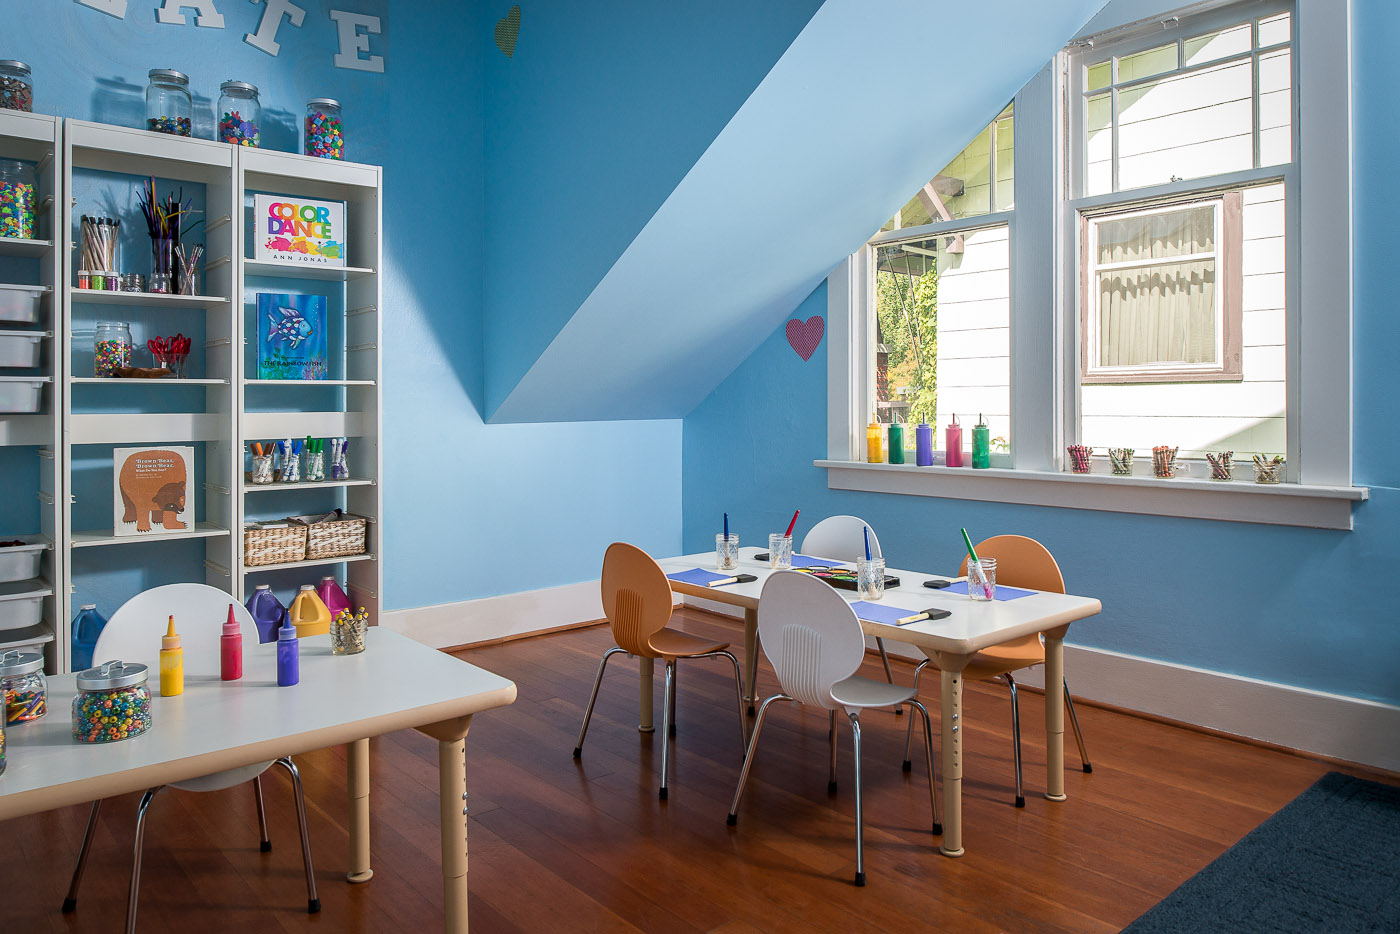 Blue room with art supplies for kids and teachers